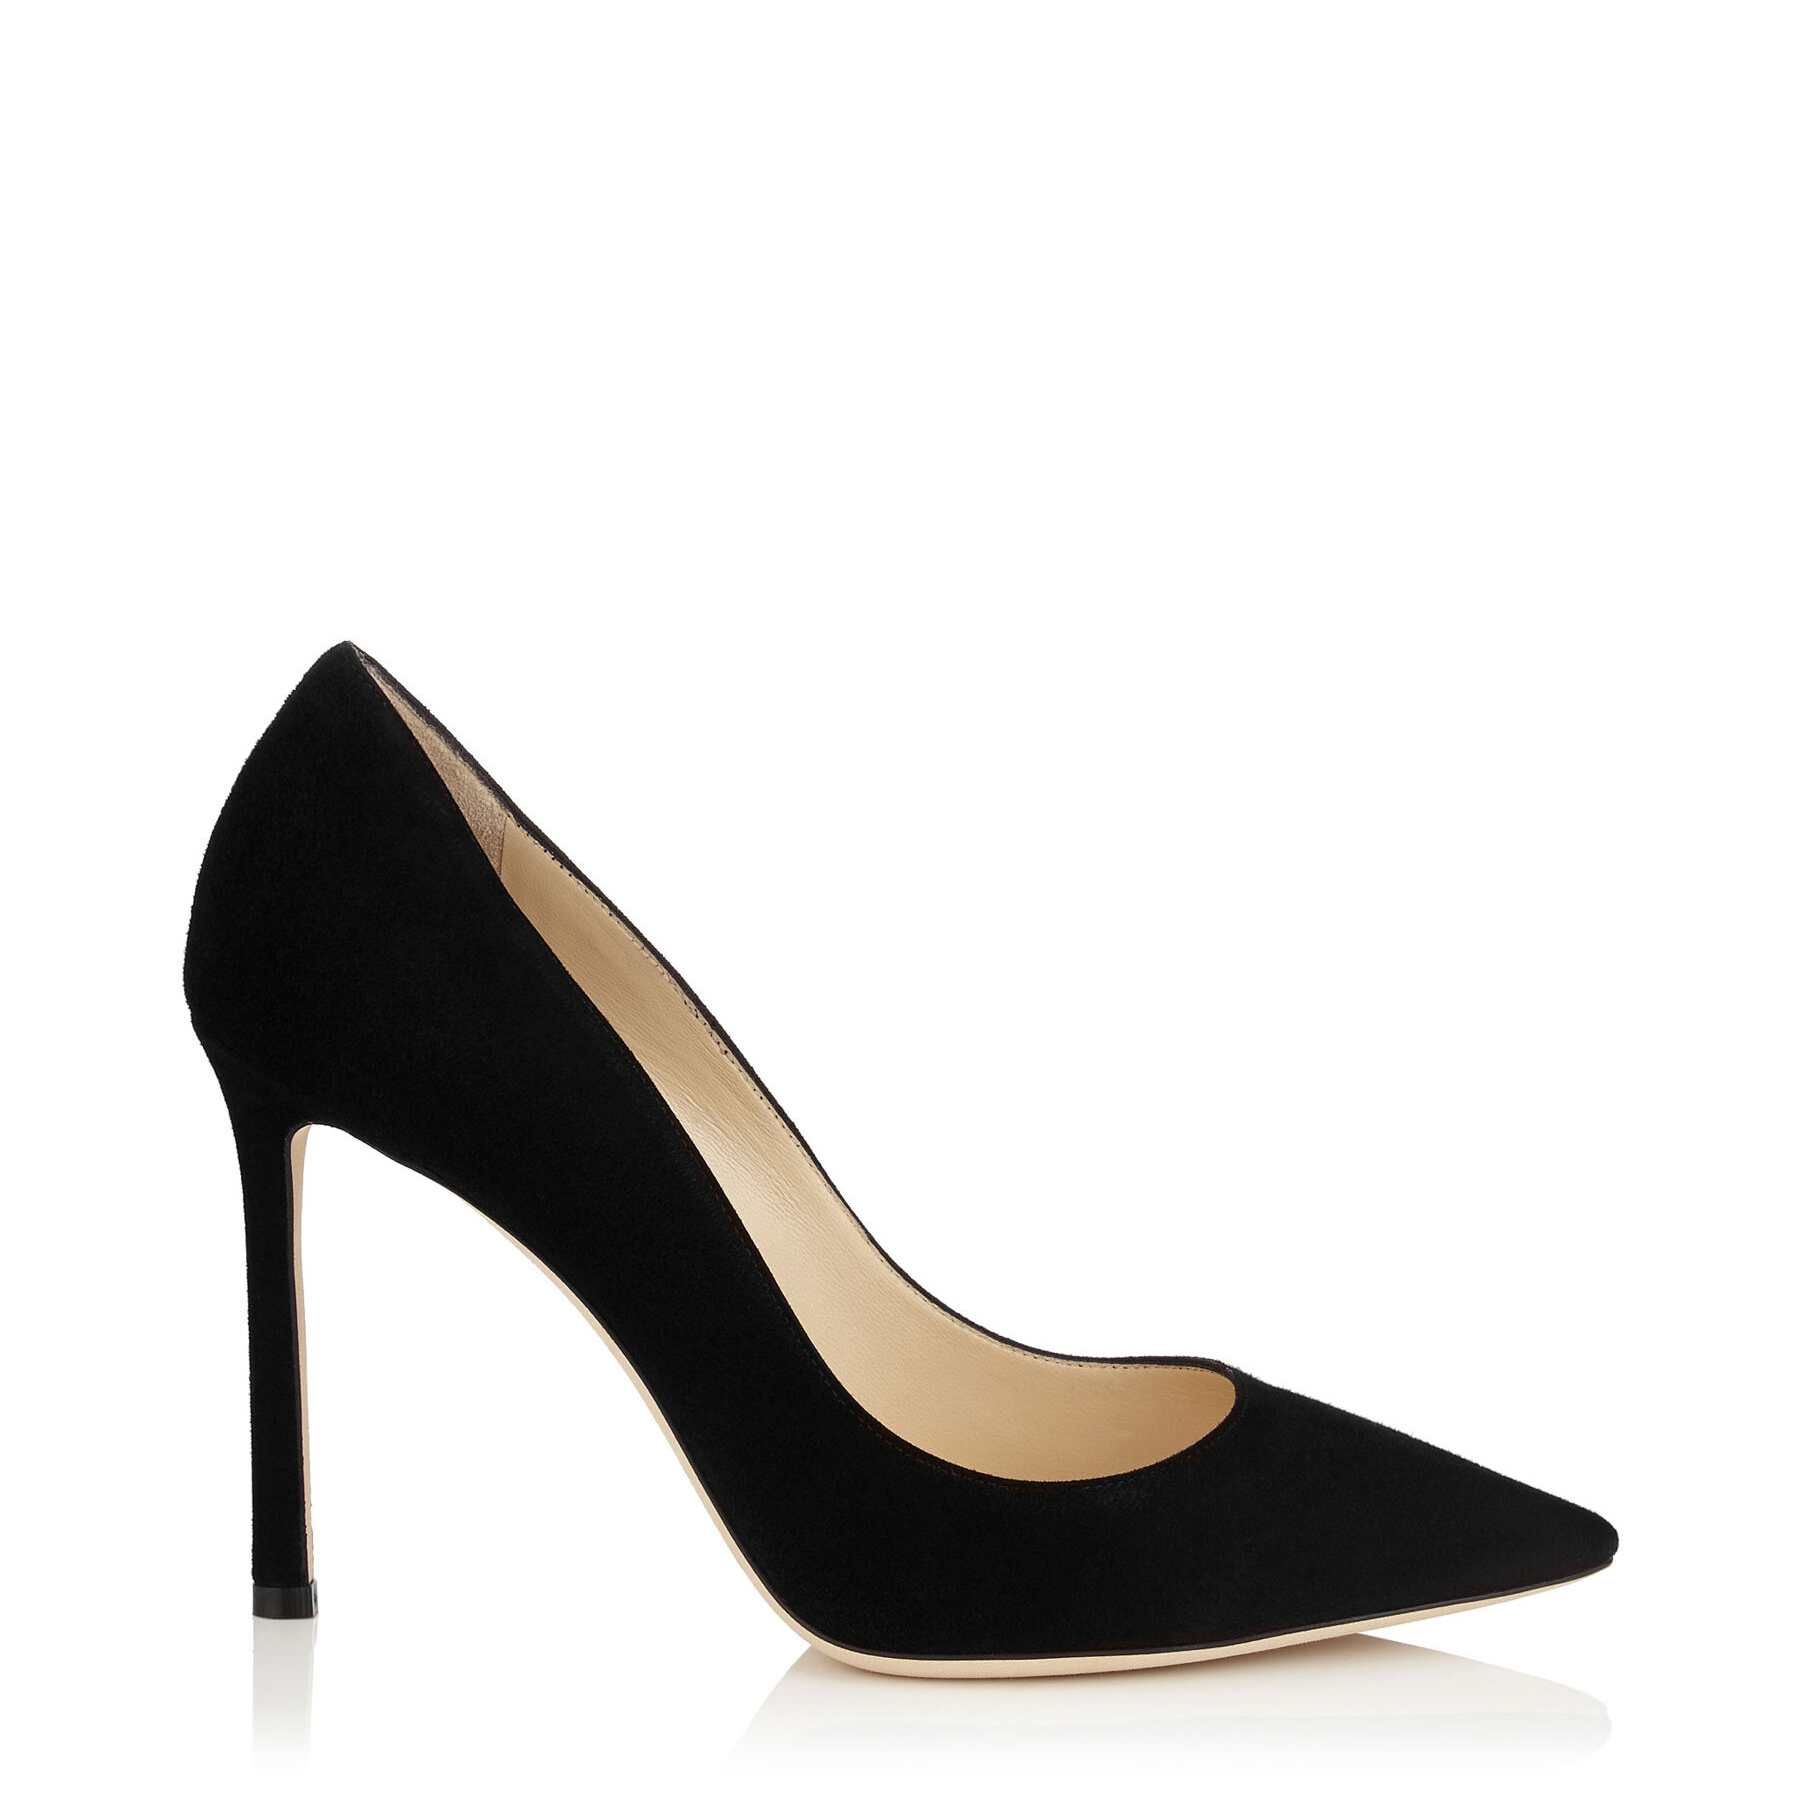 ROMY 100 Black Suede Pointy Toe Pumps by Jimmy Choo